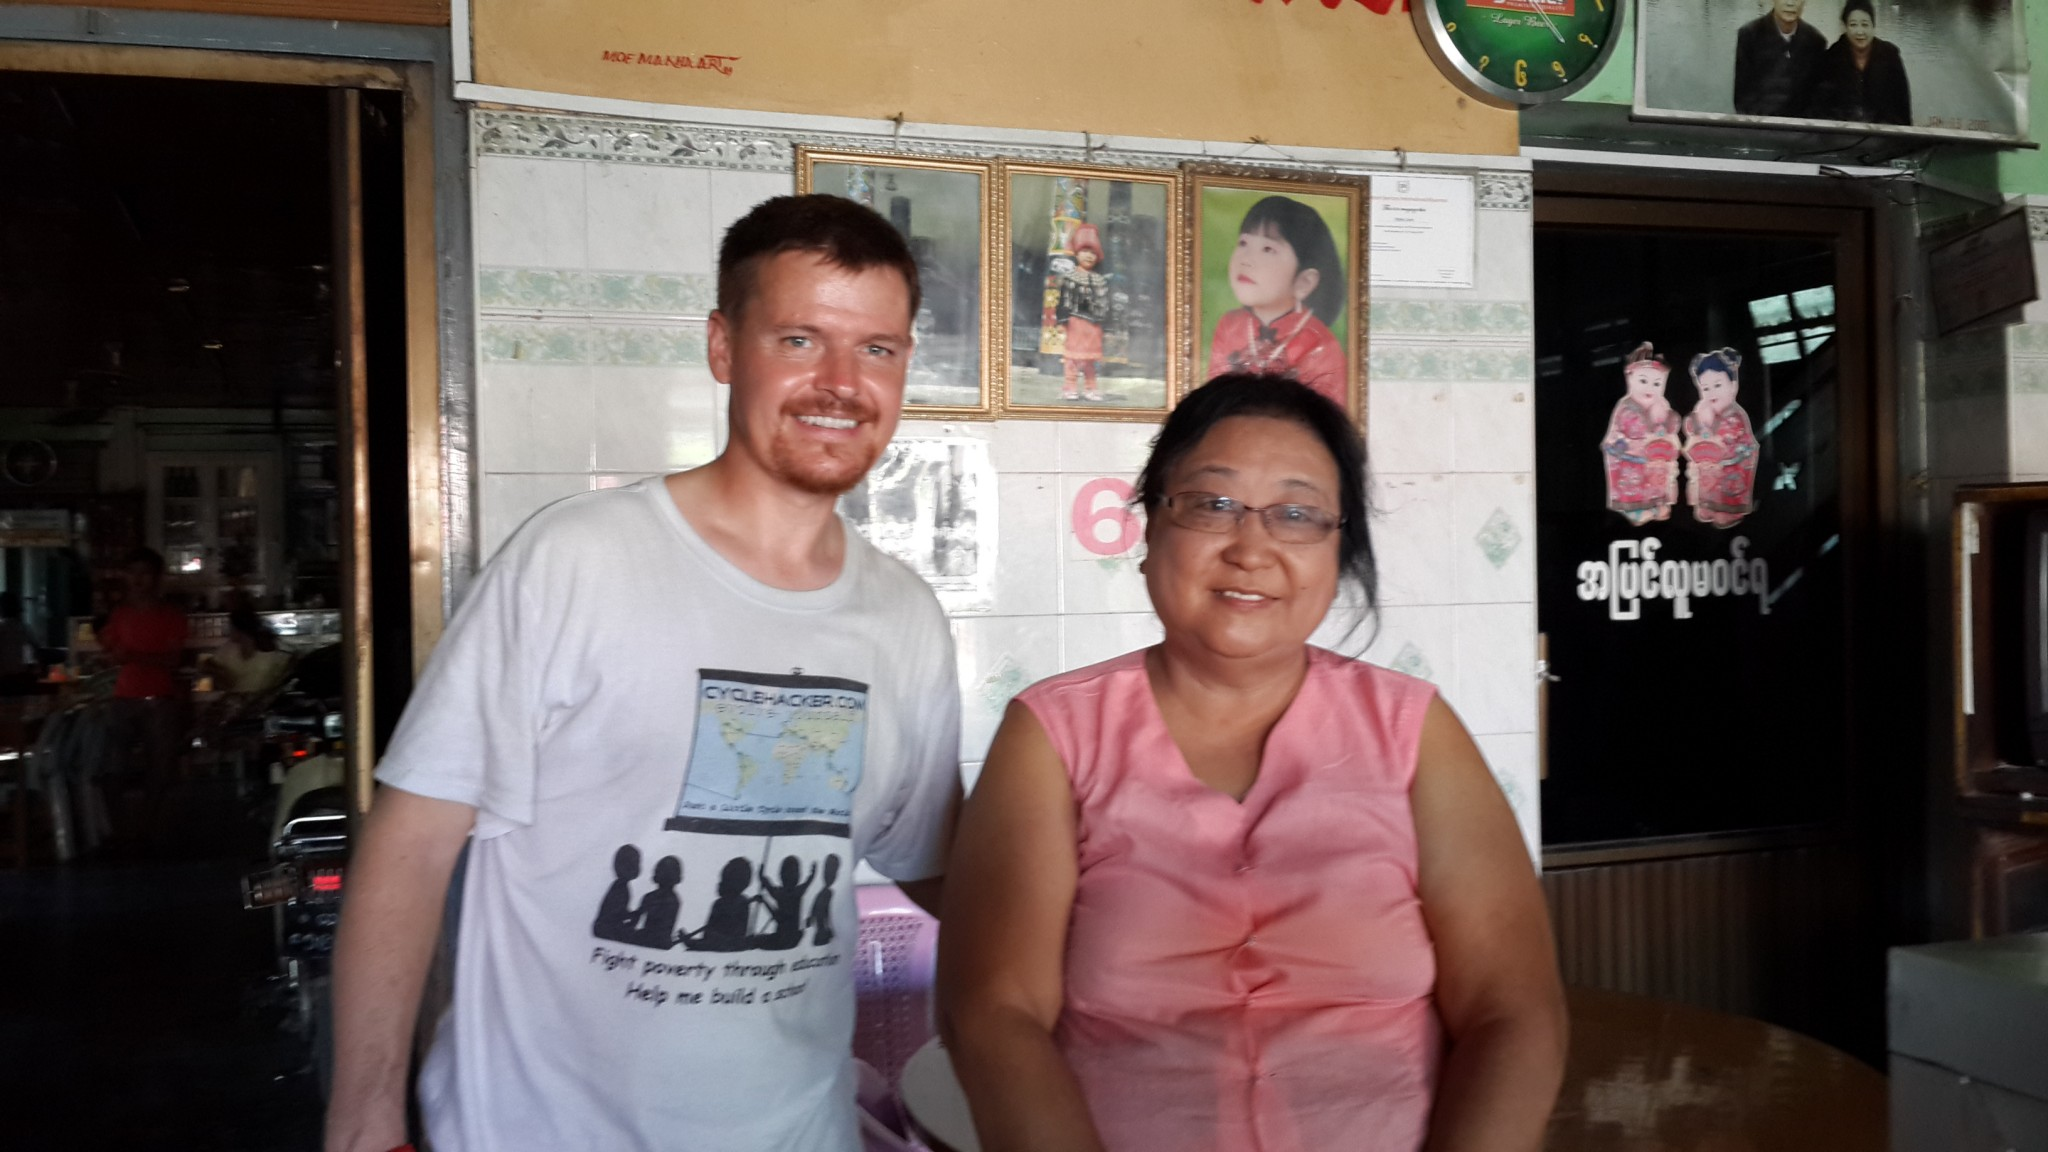 This lady helped me learn some Burmese words at her restaurant in Kalemyo.